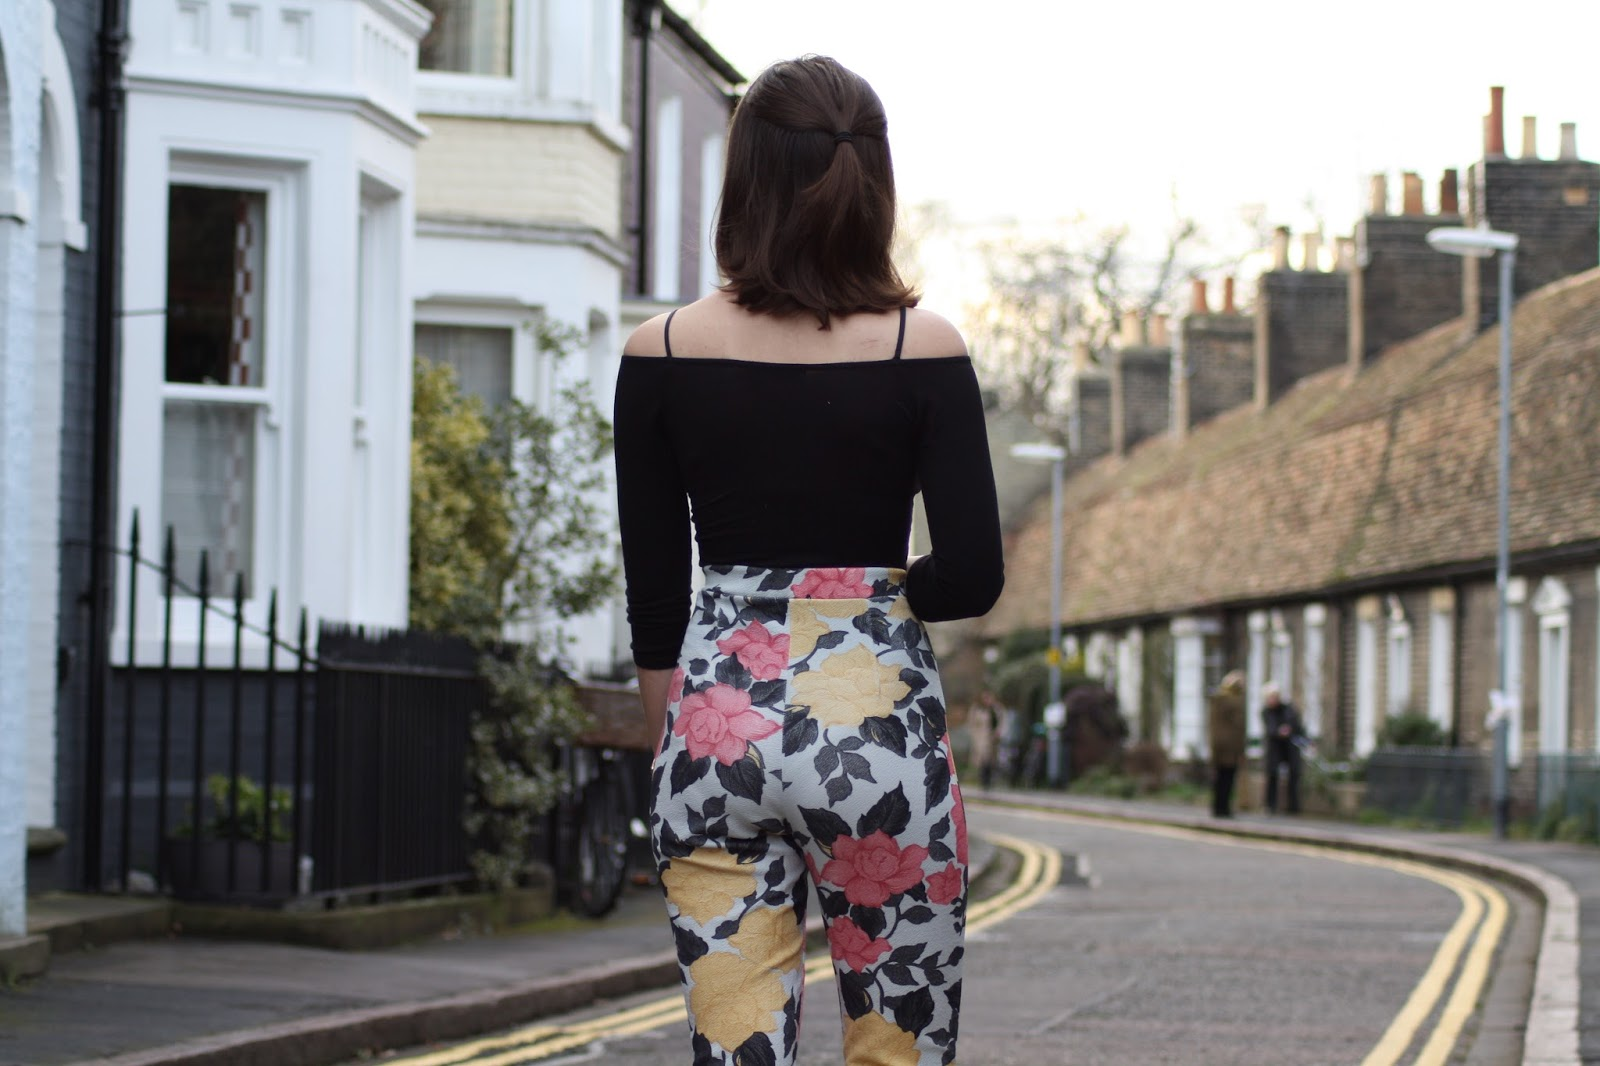 Abbey, a bloggerer, stands facing away from the camera, wearing floral trousers and a black off-shoulder top